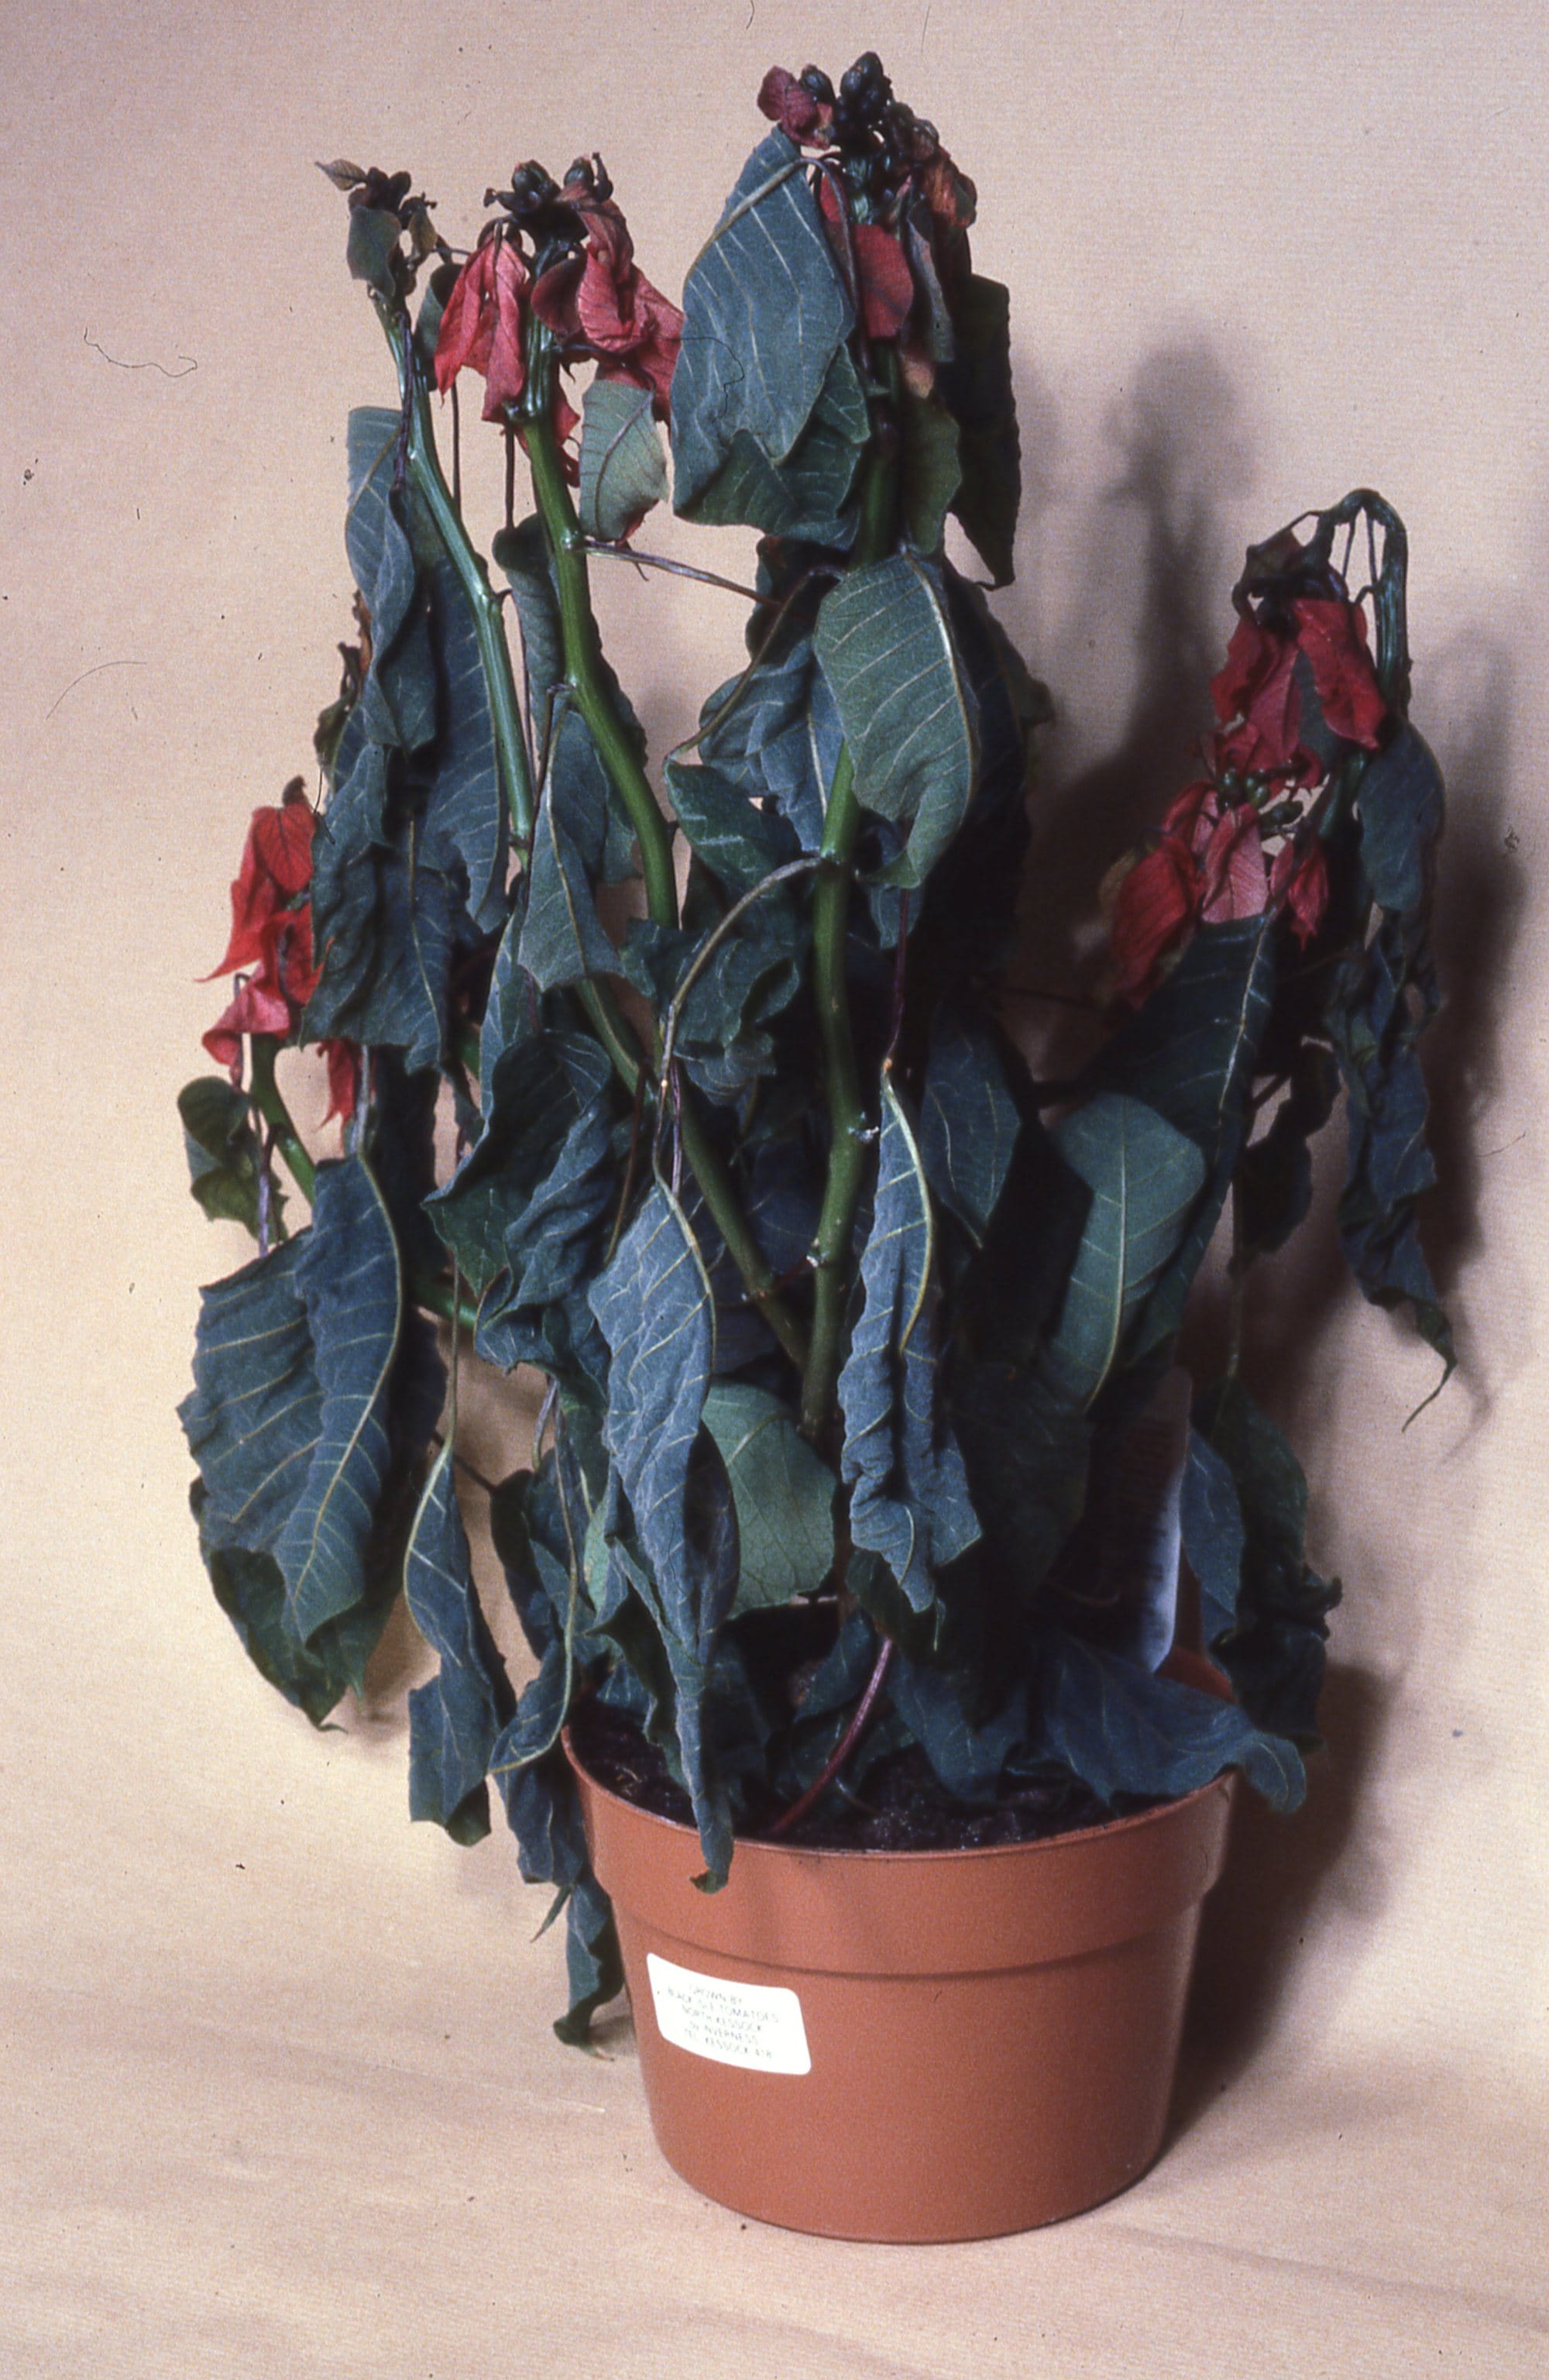 cold-damaged-plants